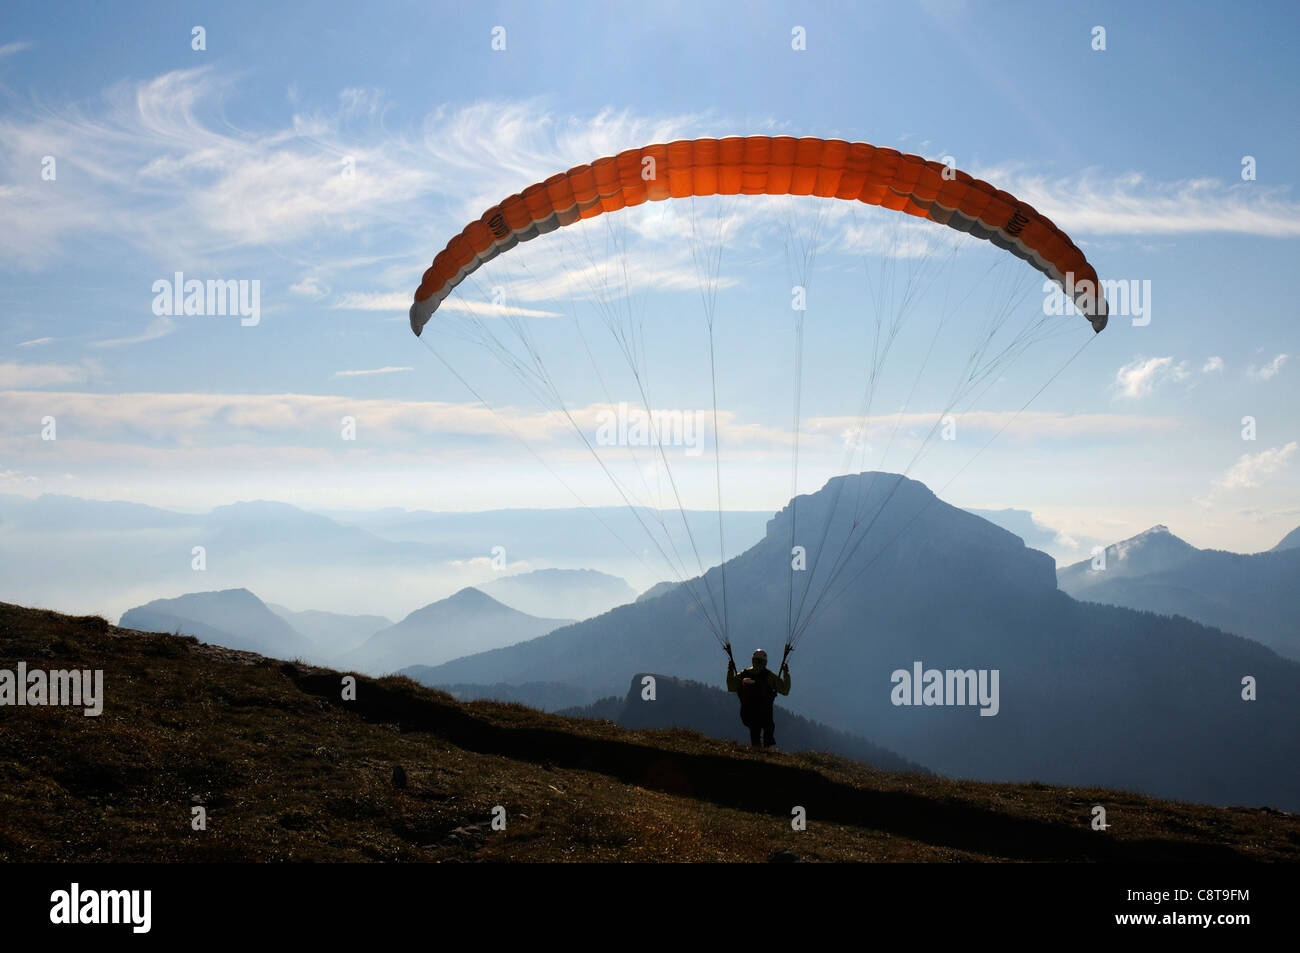 Parapenting in the Chartreuse region of the French Alps - Stock Image